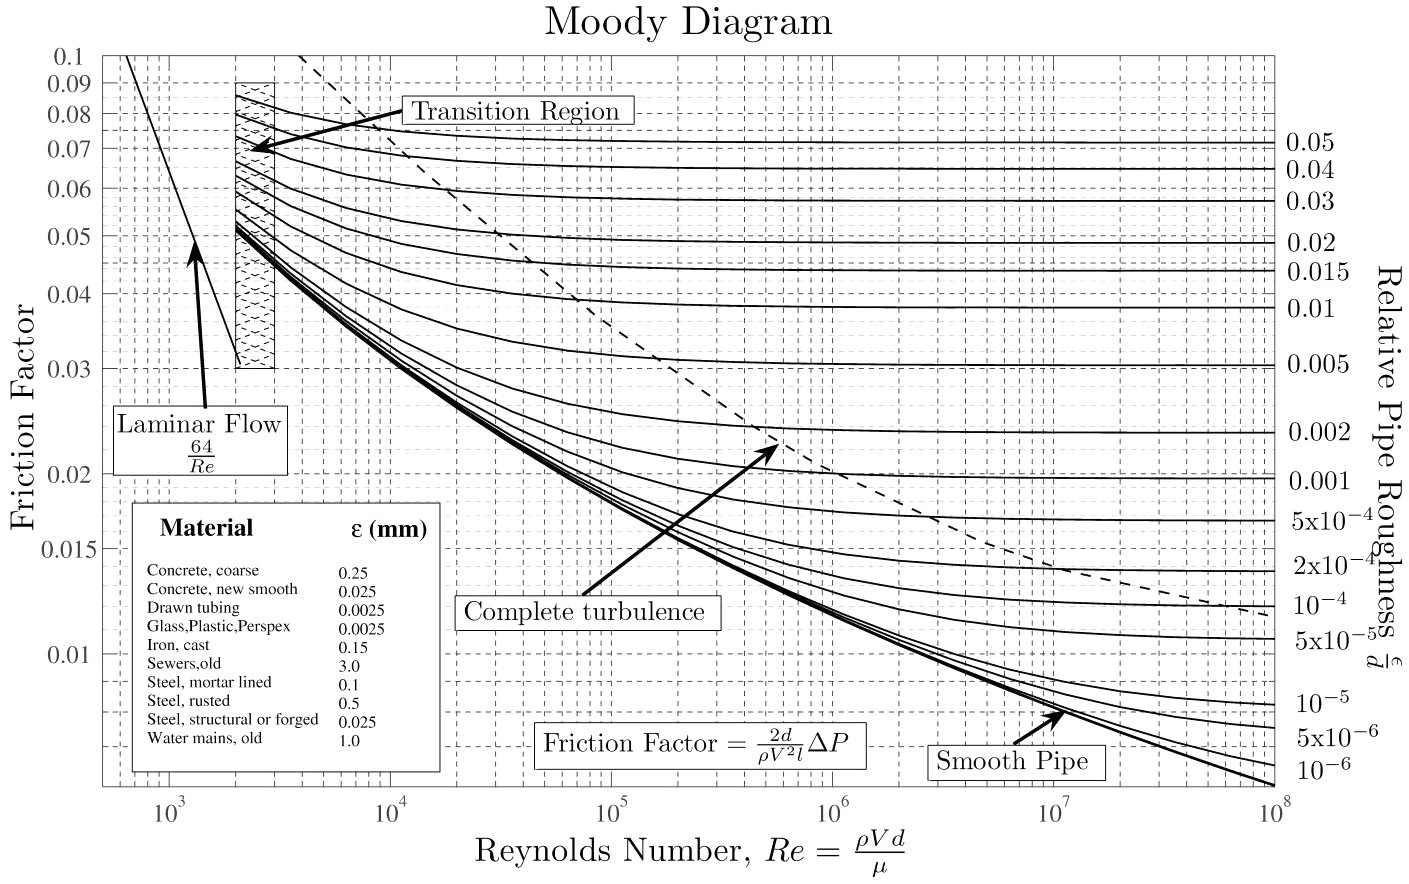 Drawing Smooth Lines Matlab : Moody chart wikipedia